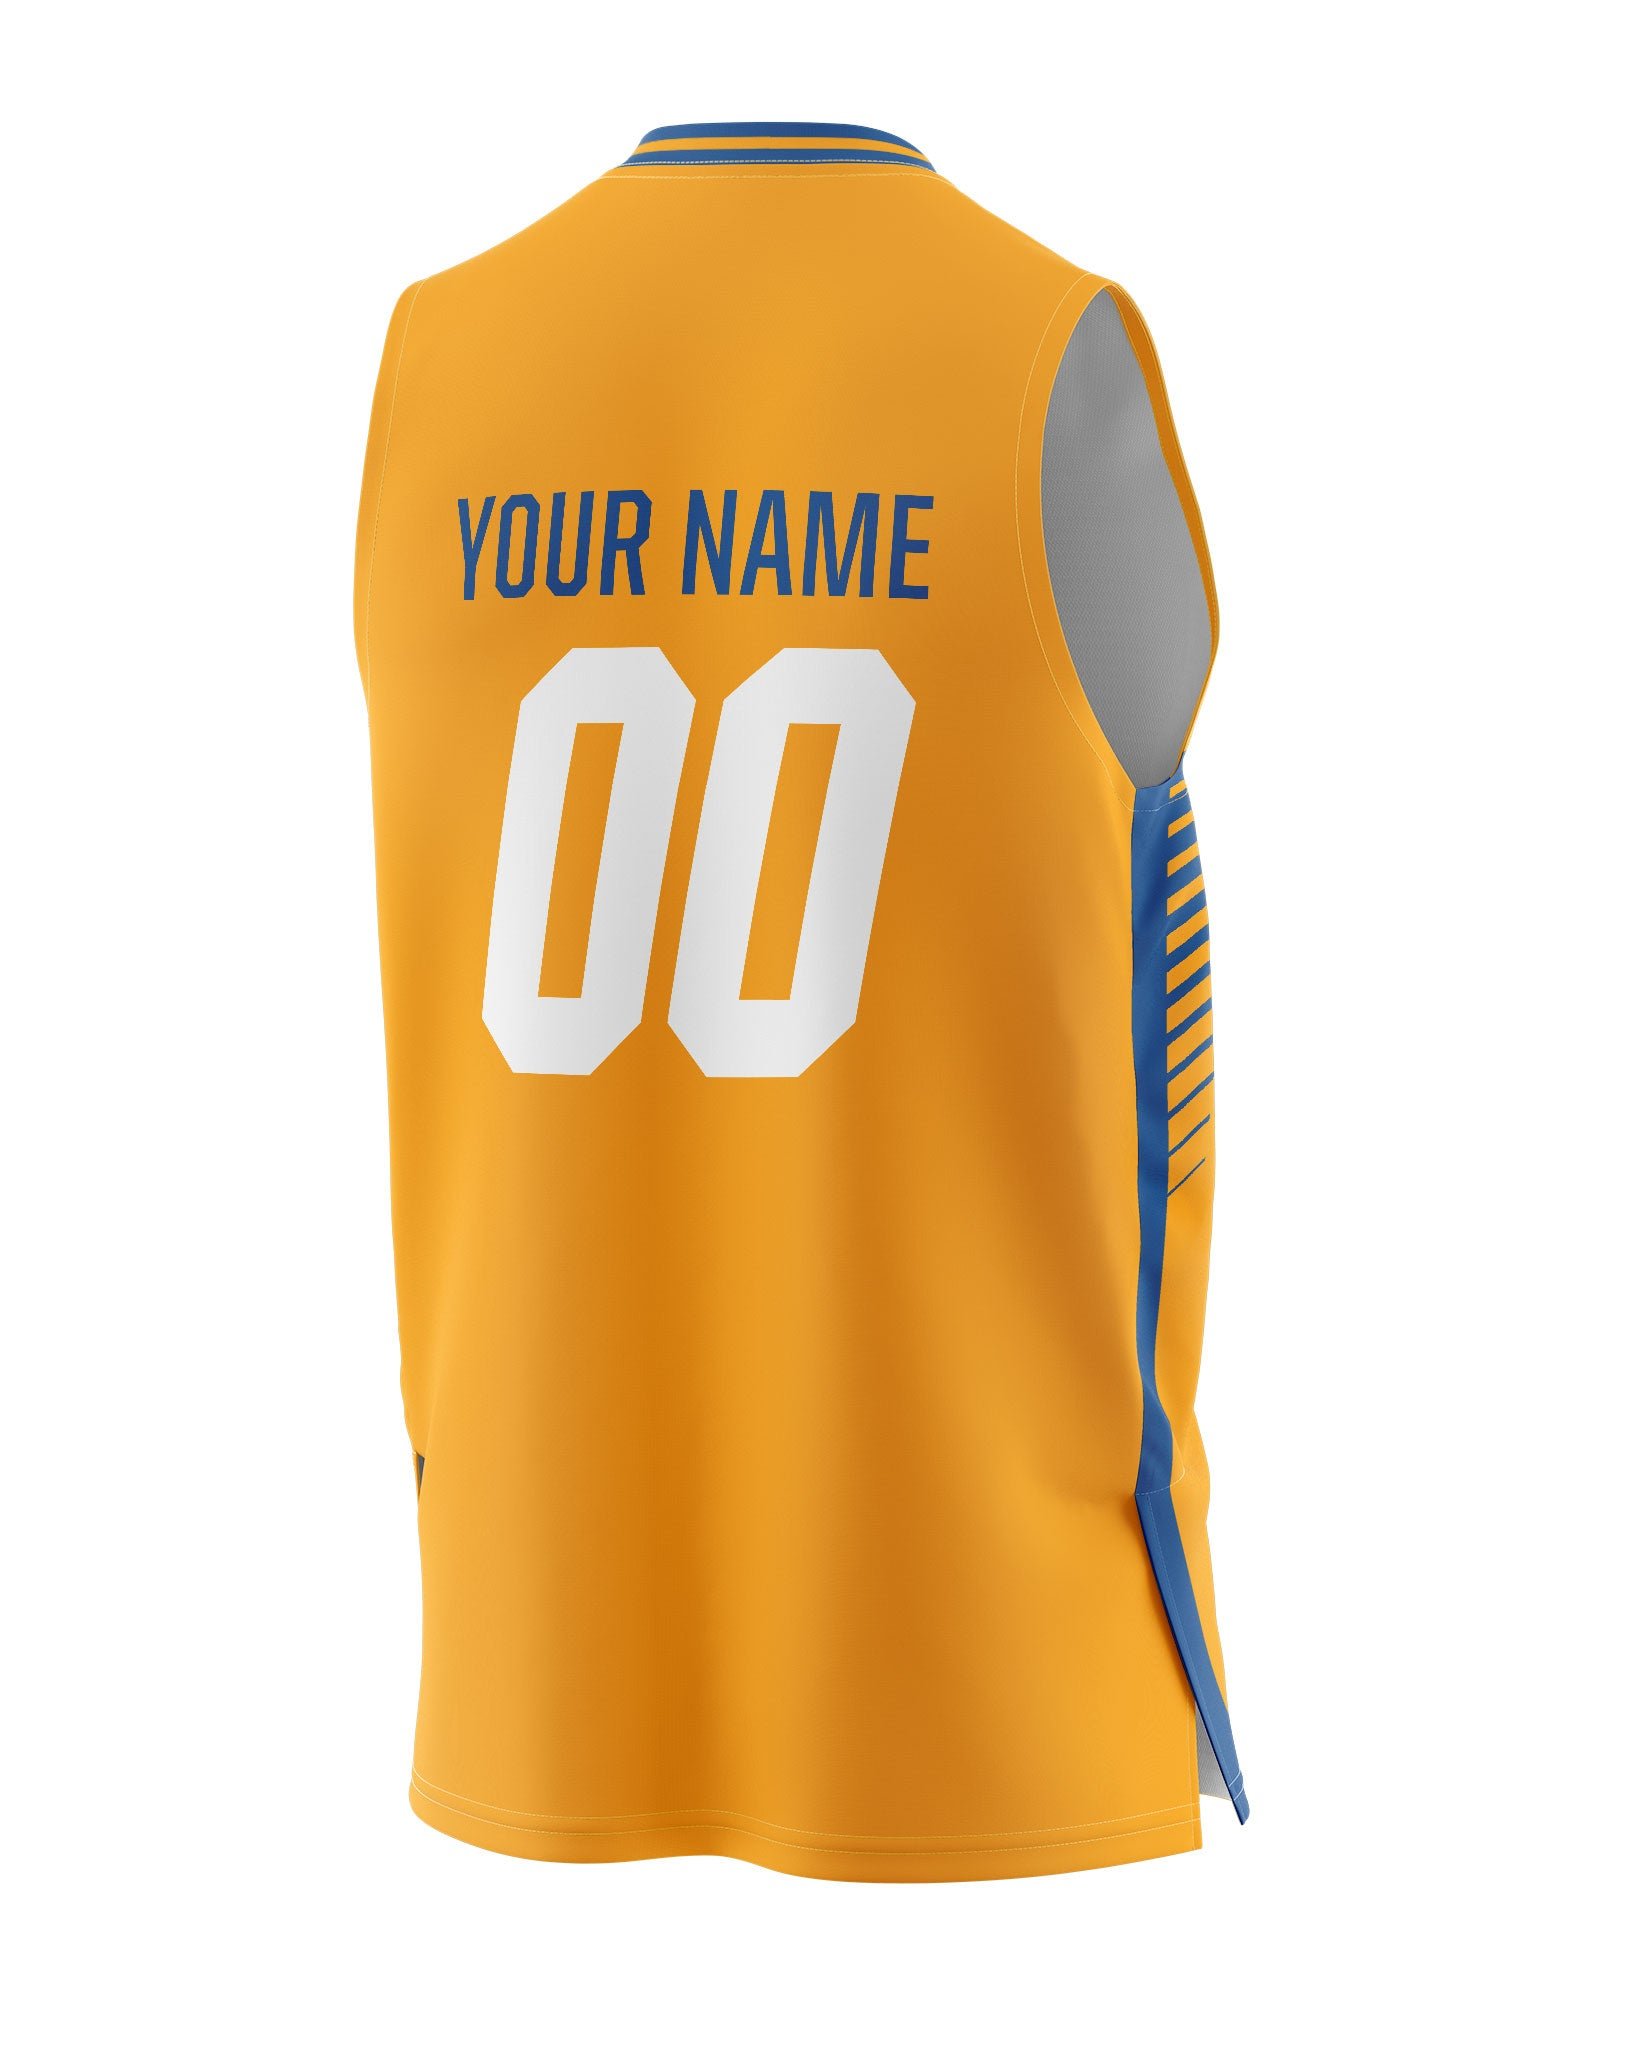 Brisbane Bullets 20/21 Authentic Away Jersey - Personalised